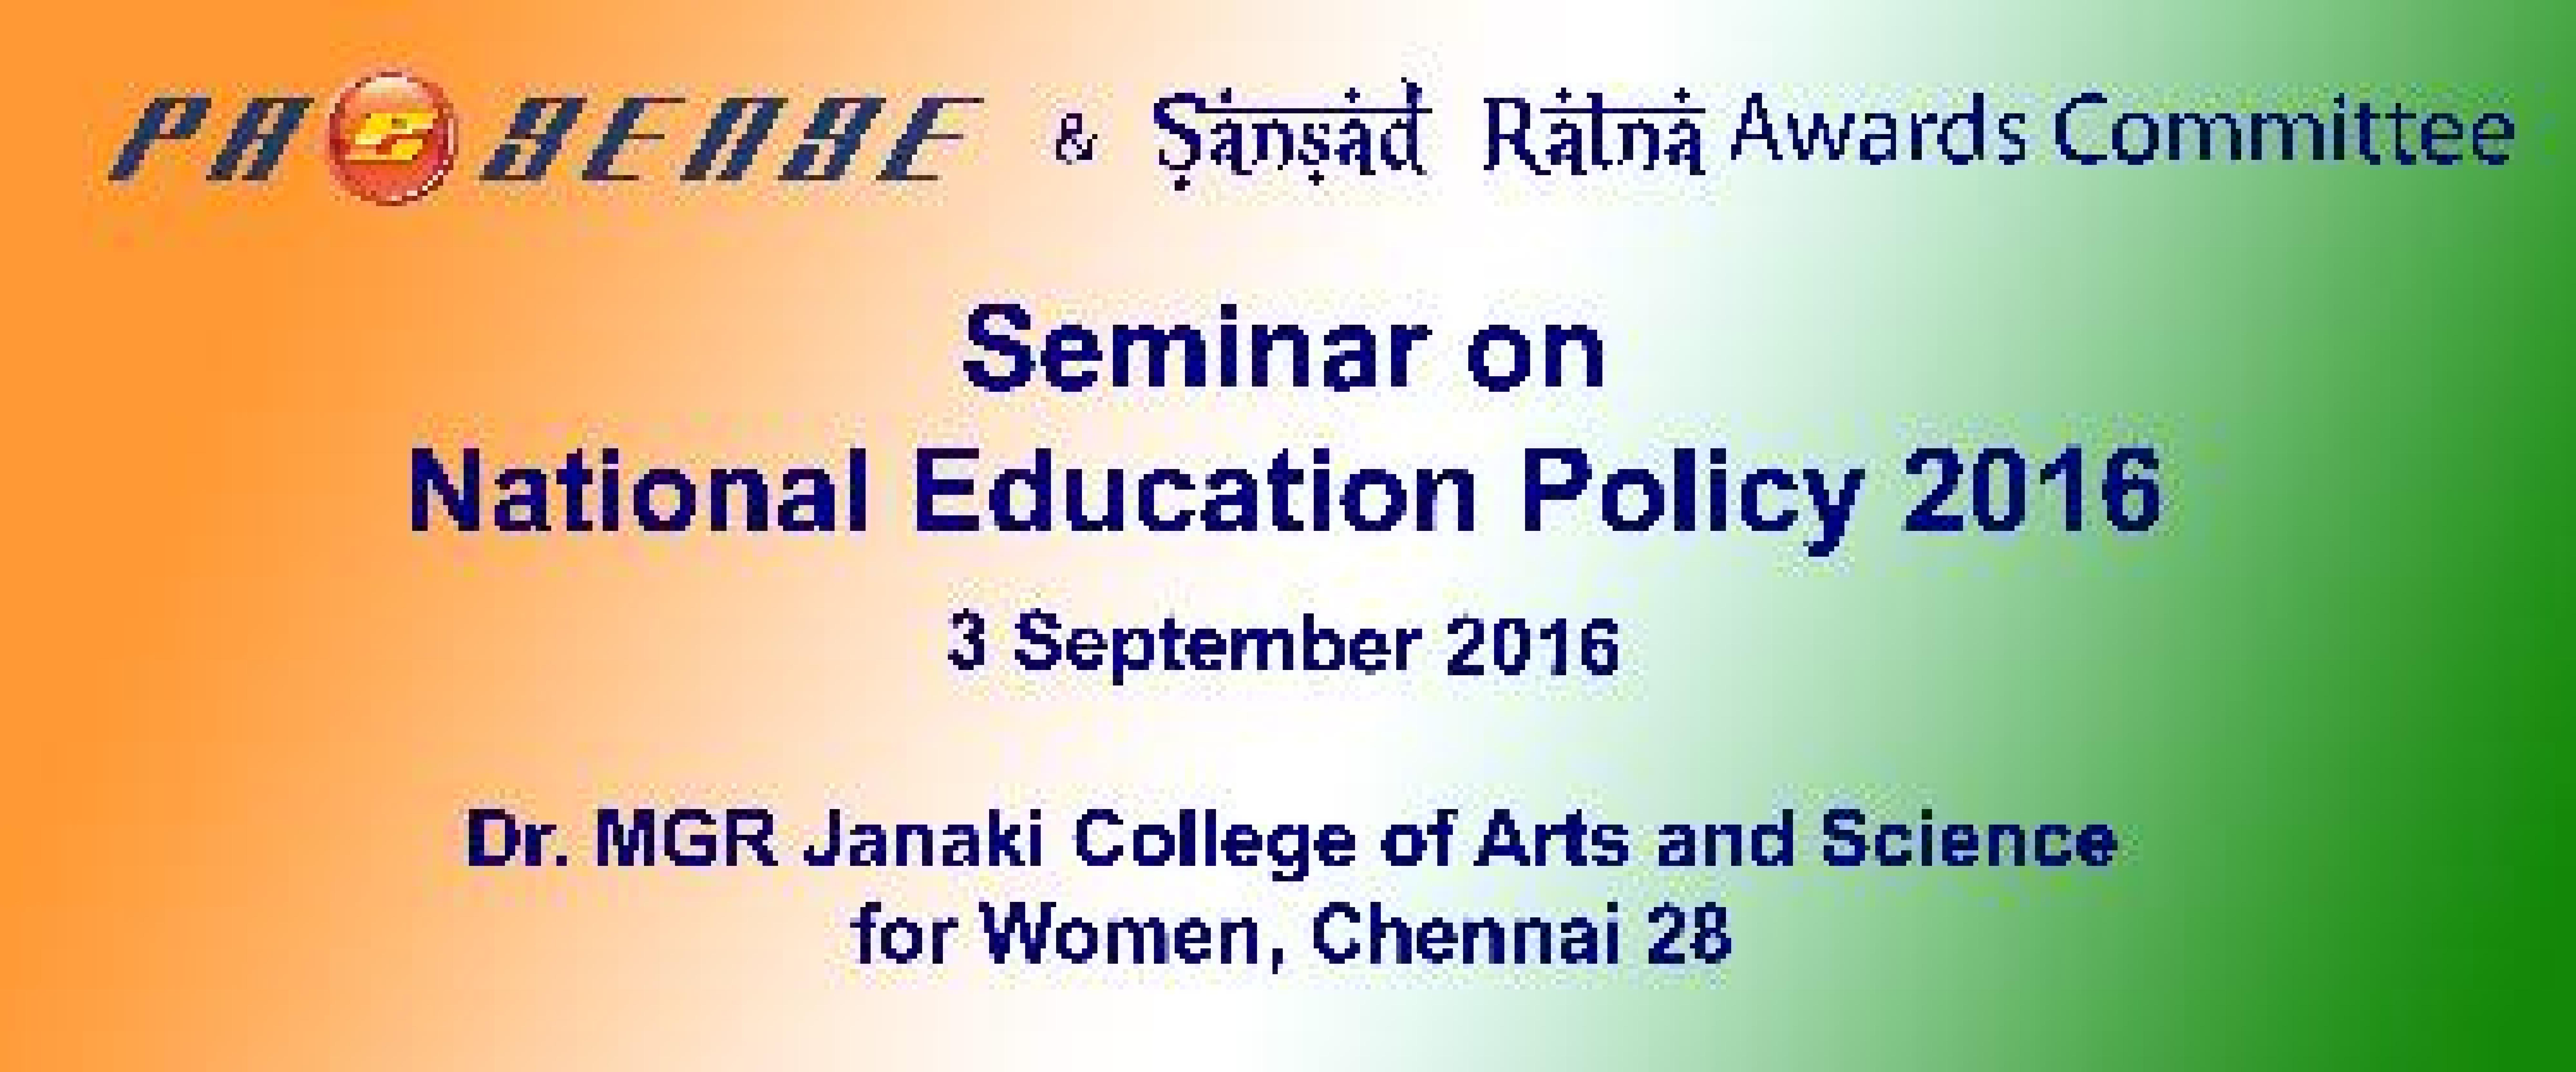 National Education Policy (NEP2016) - Panel discussion